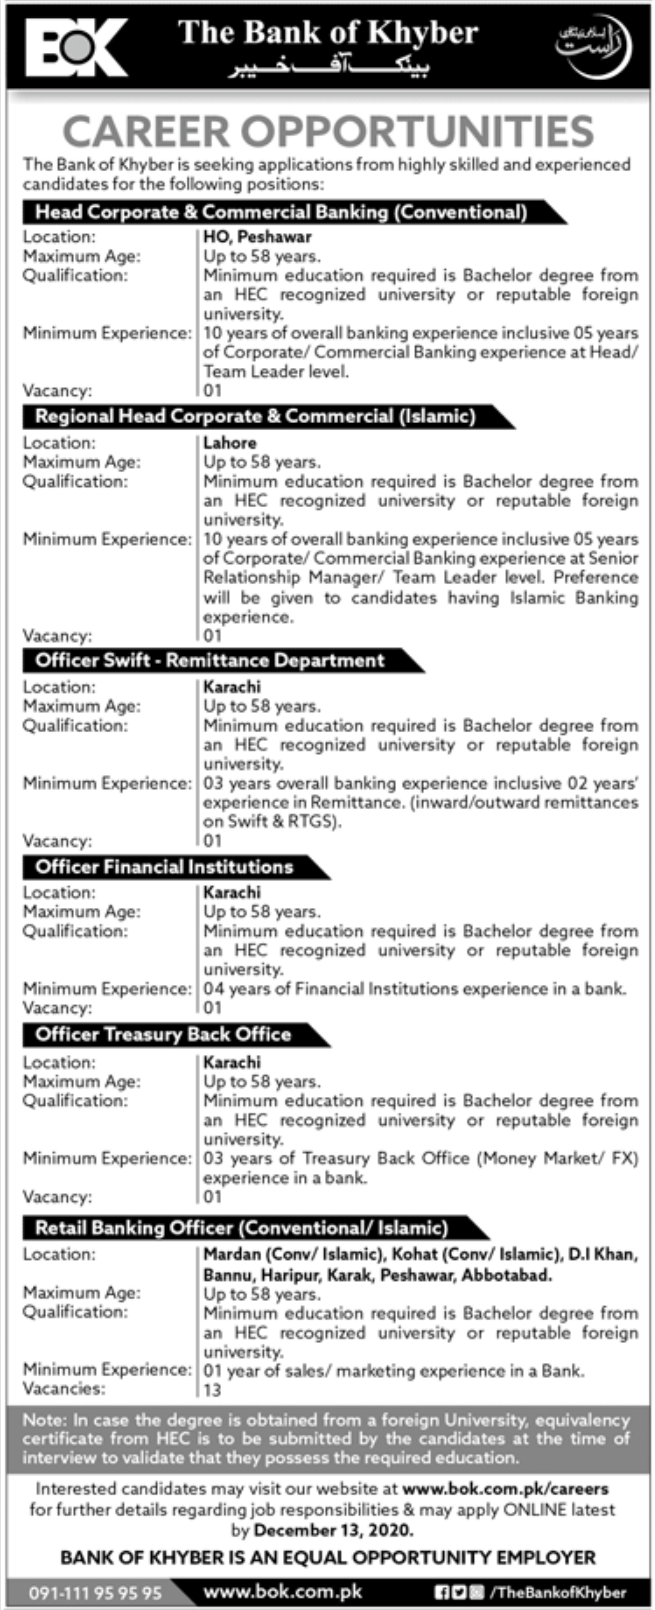 The Bank of Khyber BOK Jobs November 2020